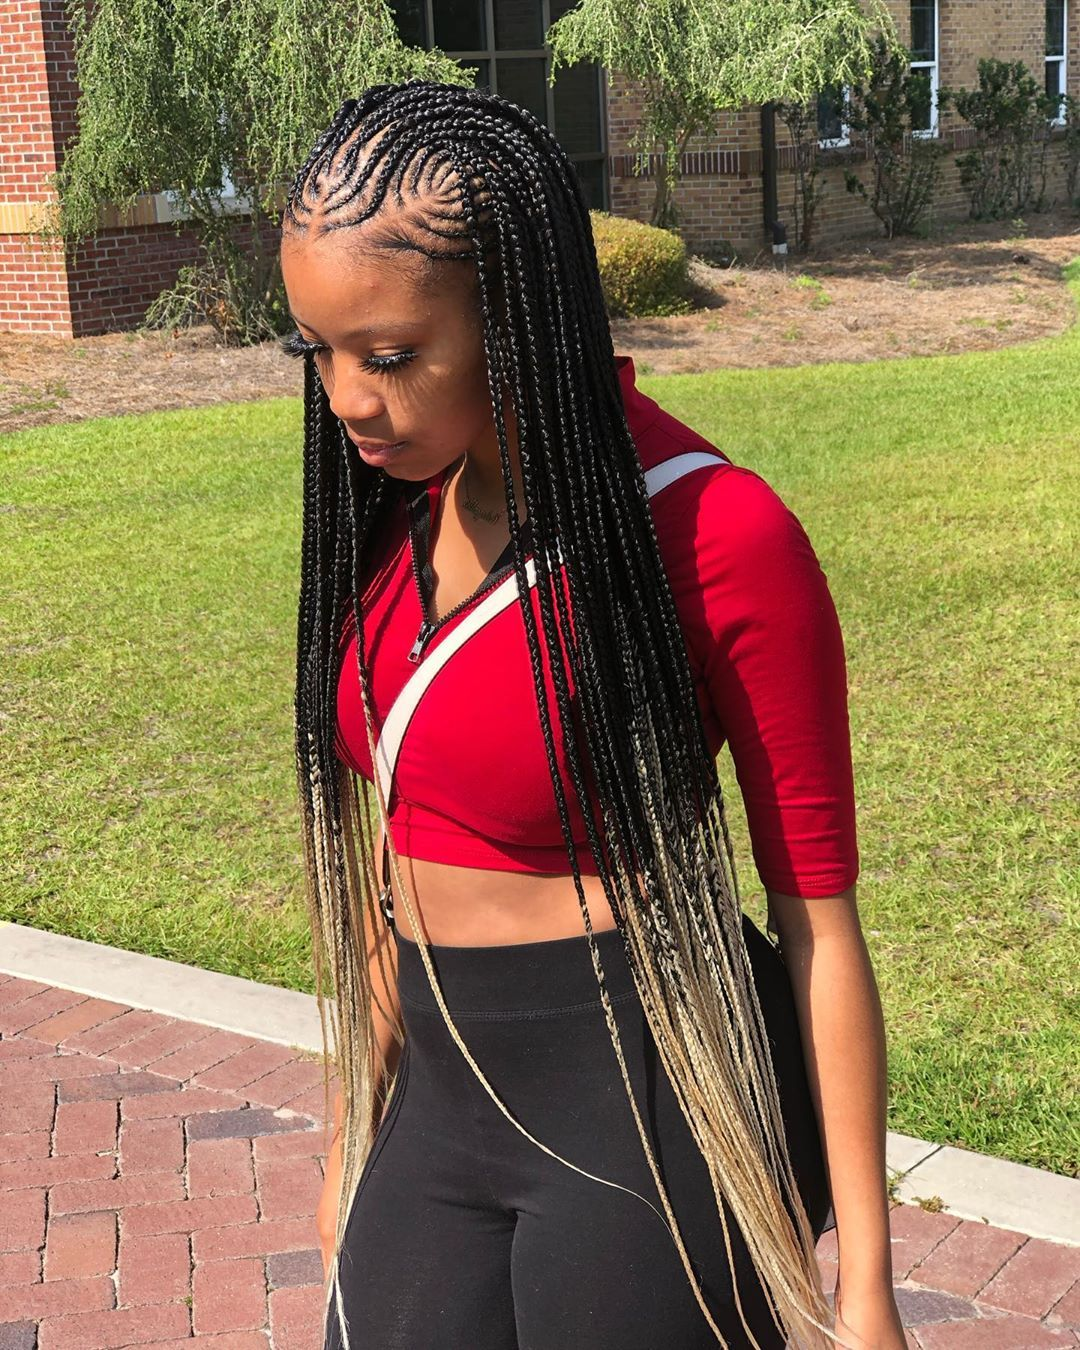 """@streetmedicine_'s Instagram profile post: """"Front Of her braids re-done after almost a month 🤯 #bookwithme #ombrebraids #tribalbraids #freestyled #appointmentsavailable"""""""